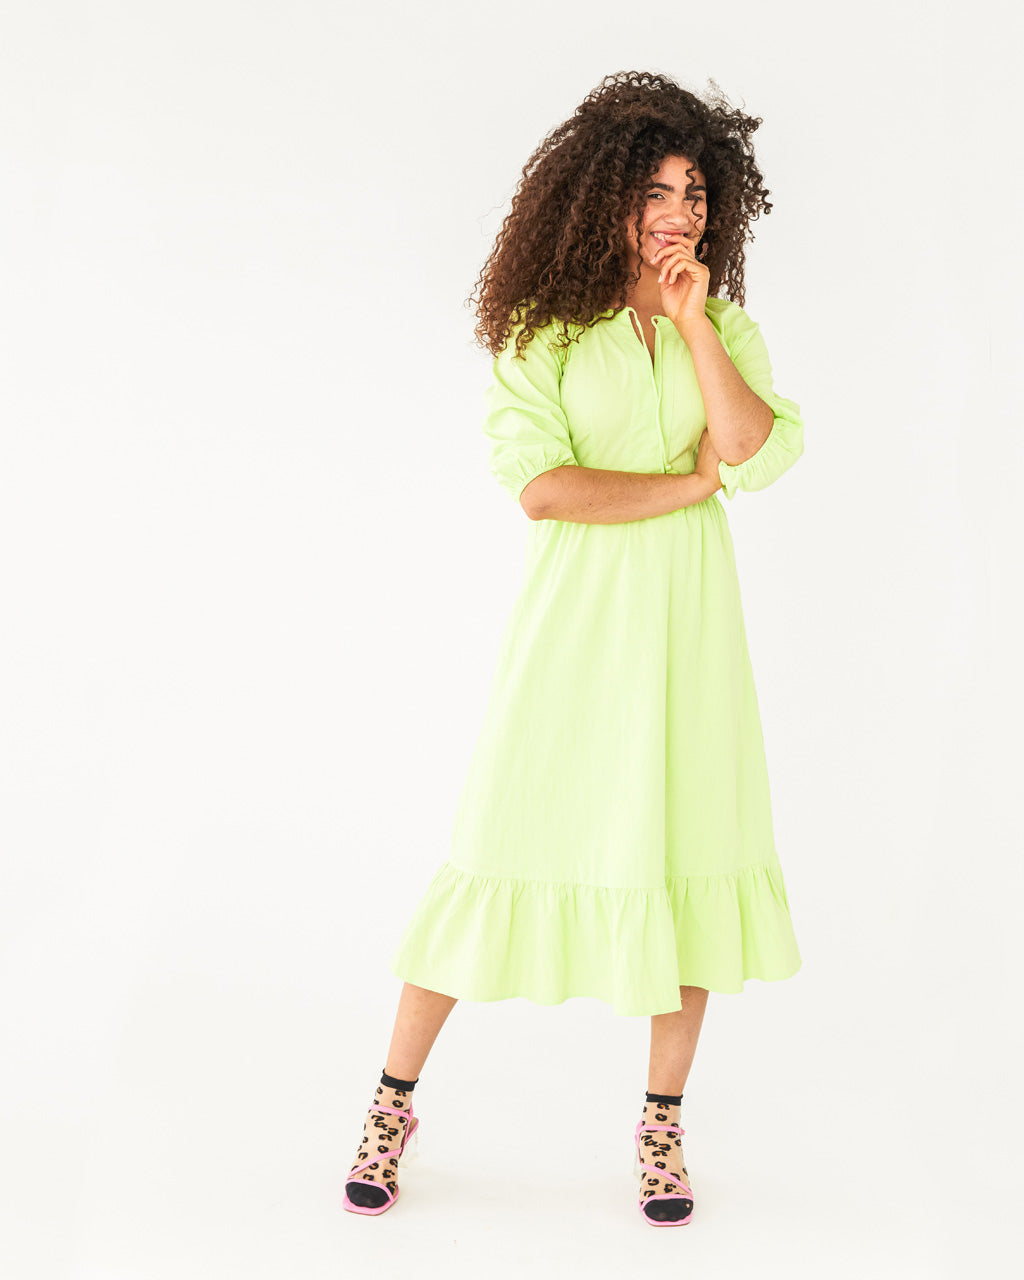 model wearing a neon green midi dress with a quarter length sleeve